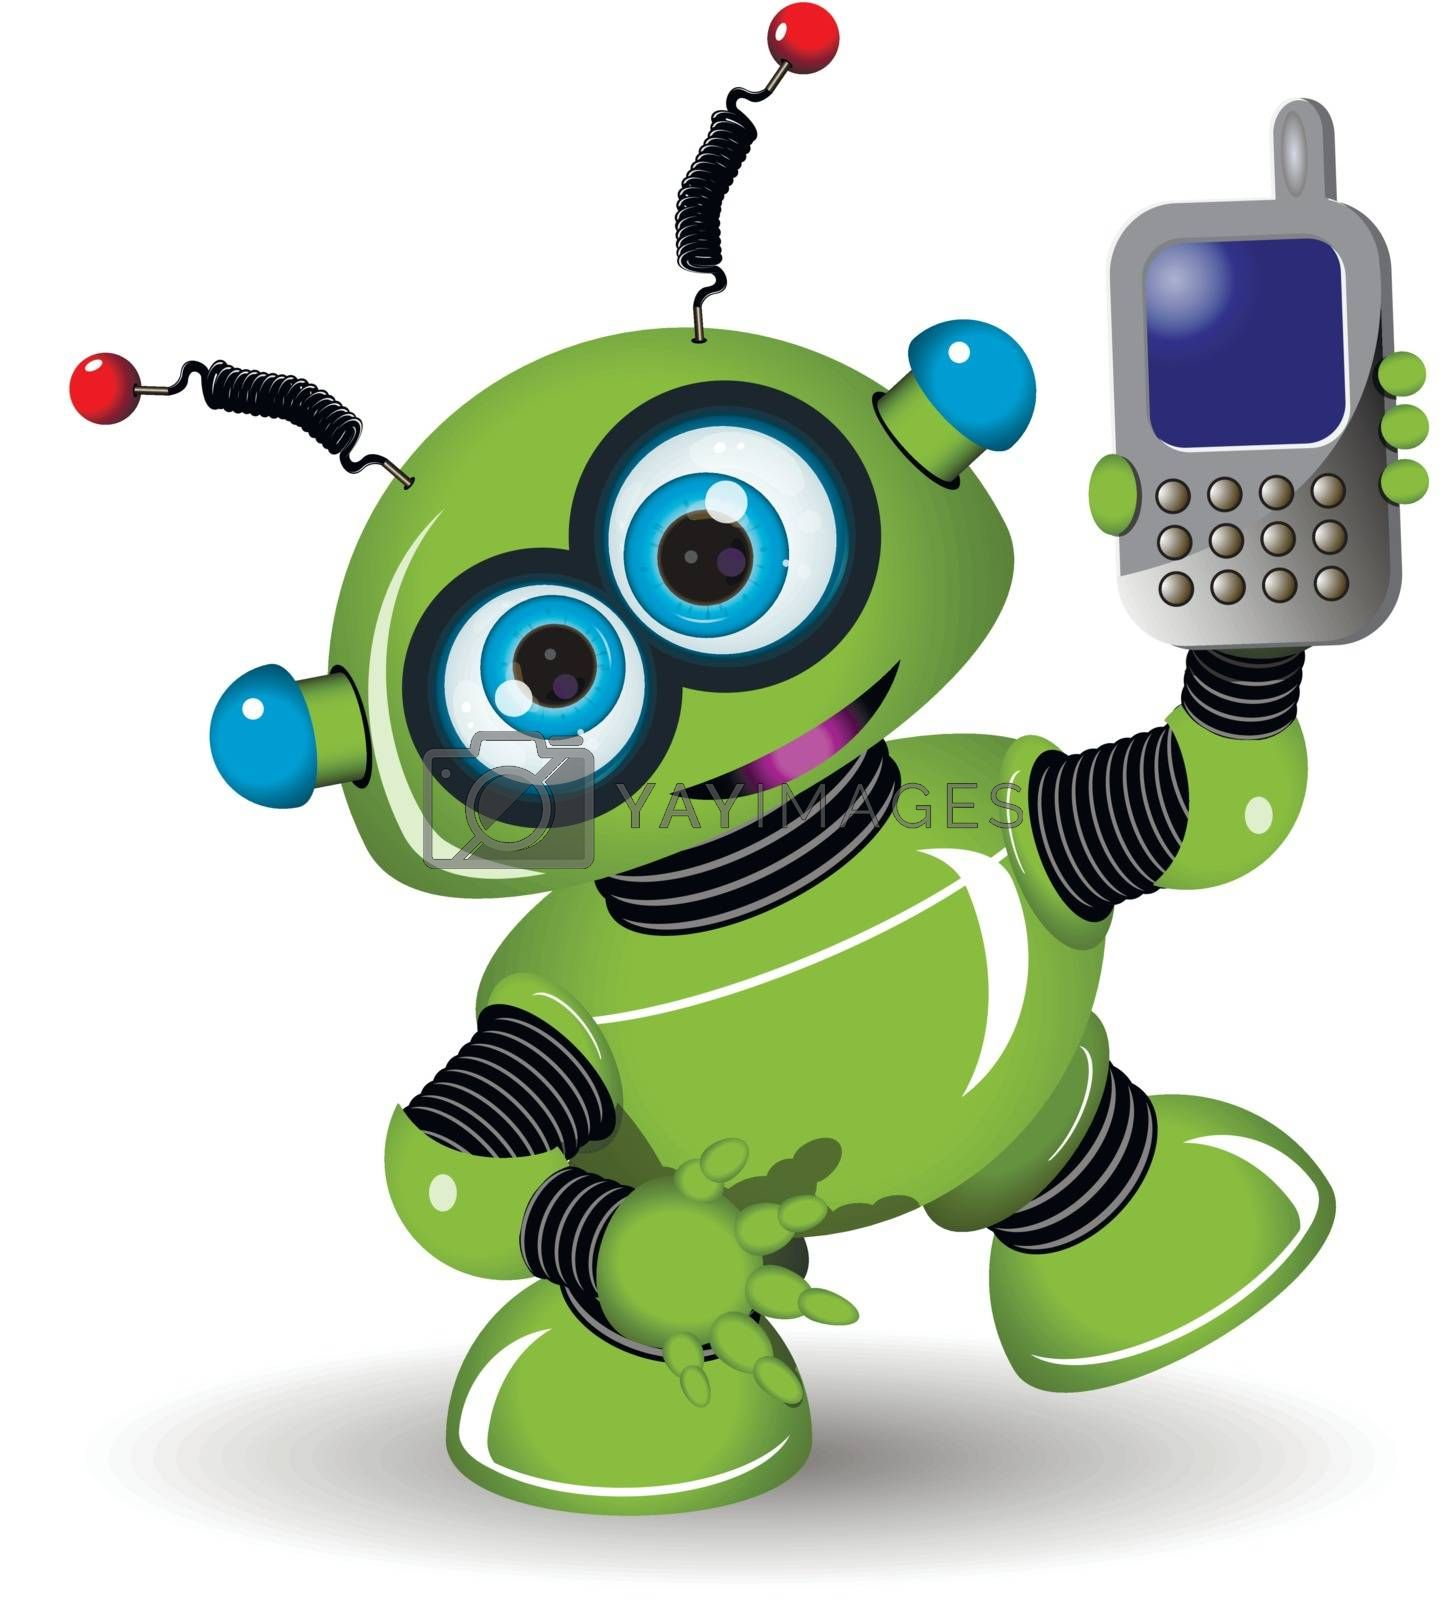 Illustration cheerful green robot and a phone